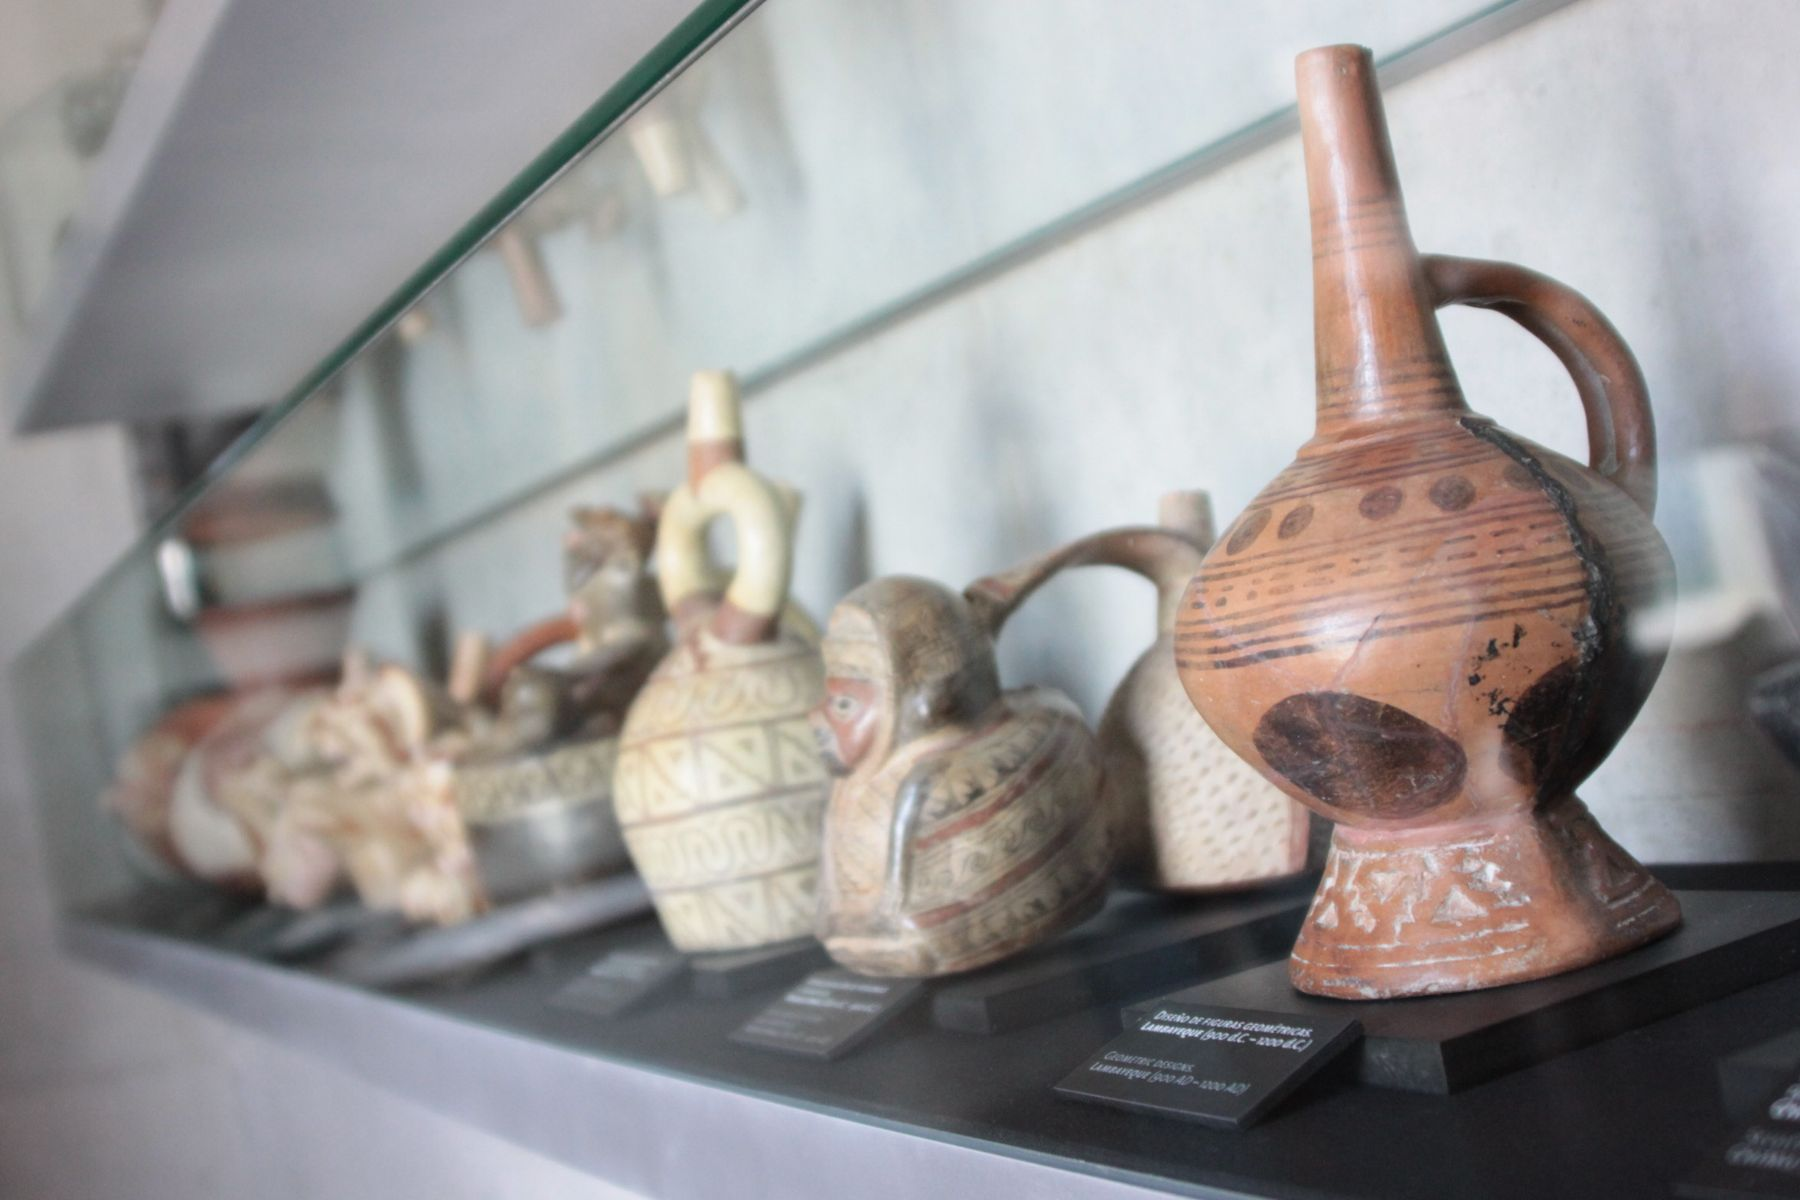 Artifacts from Mochica Culture. Photo:ANDINA/Oscar Paz